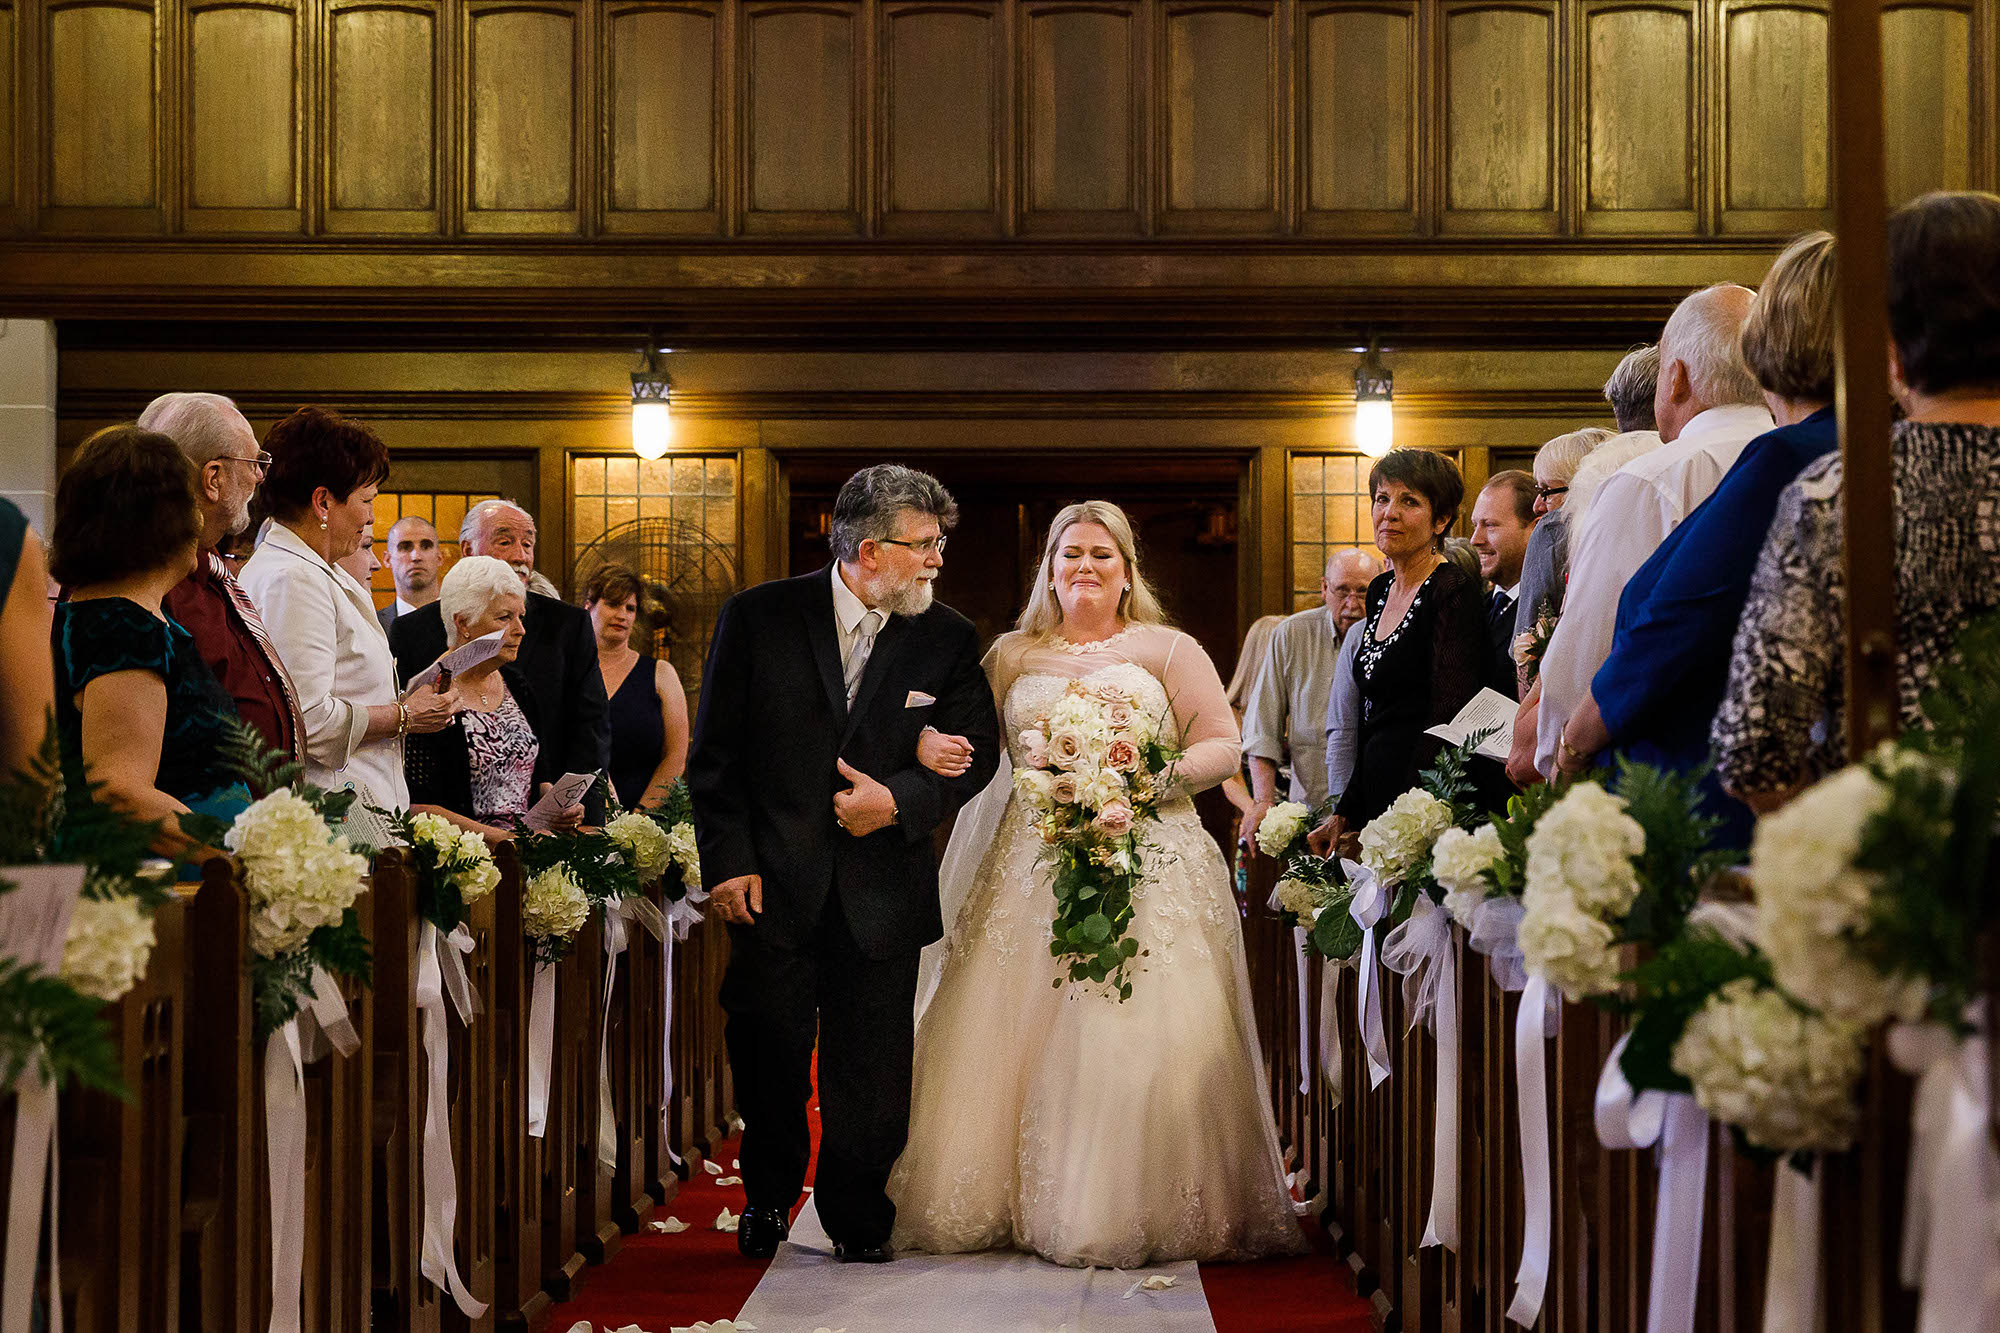 An emotional moment as the bride is escorted down the aisle by her father in Akron, Ohio.